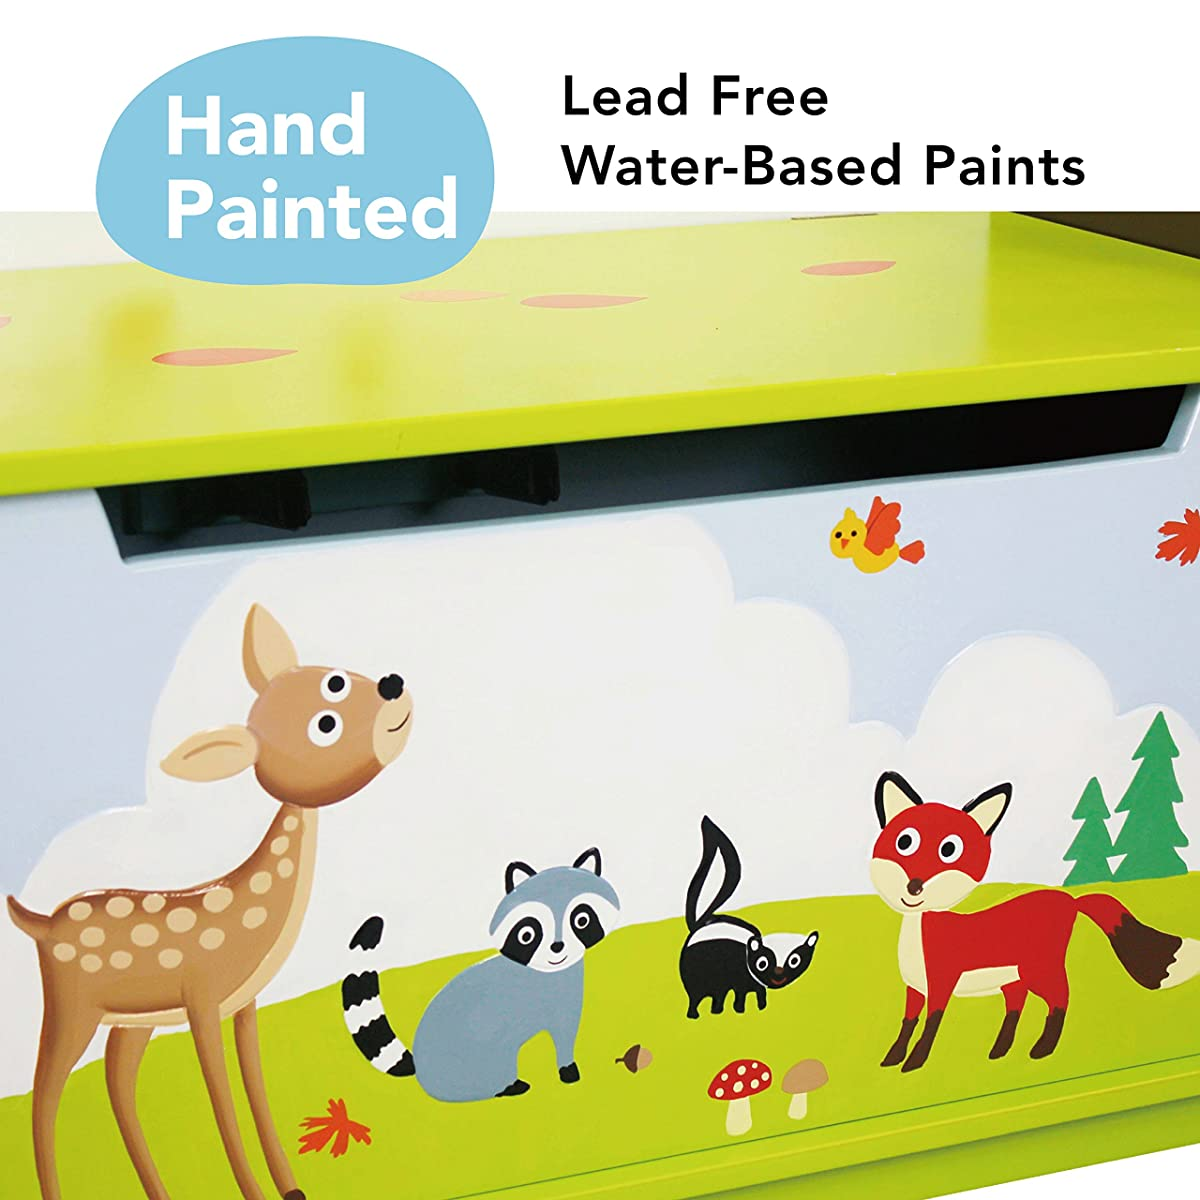 Fantasy Fields - Enchanted Woodland Thematic Kids Wooden Toy Chest with Safety Hinges | Imagination Inspiring Hand Crafted & Hand Painted Details | Non-Toxic, Lead Free Water-based Paint